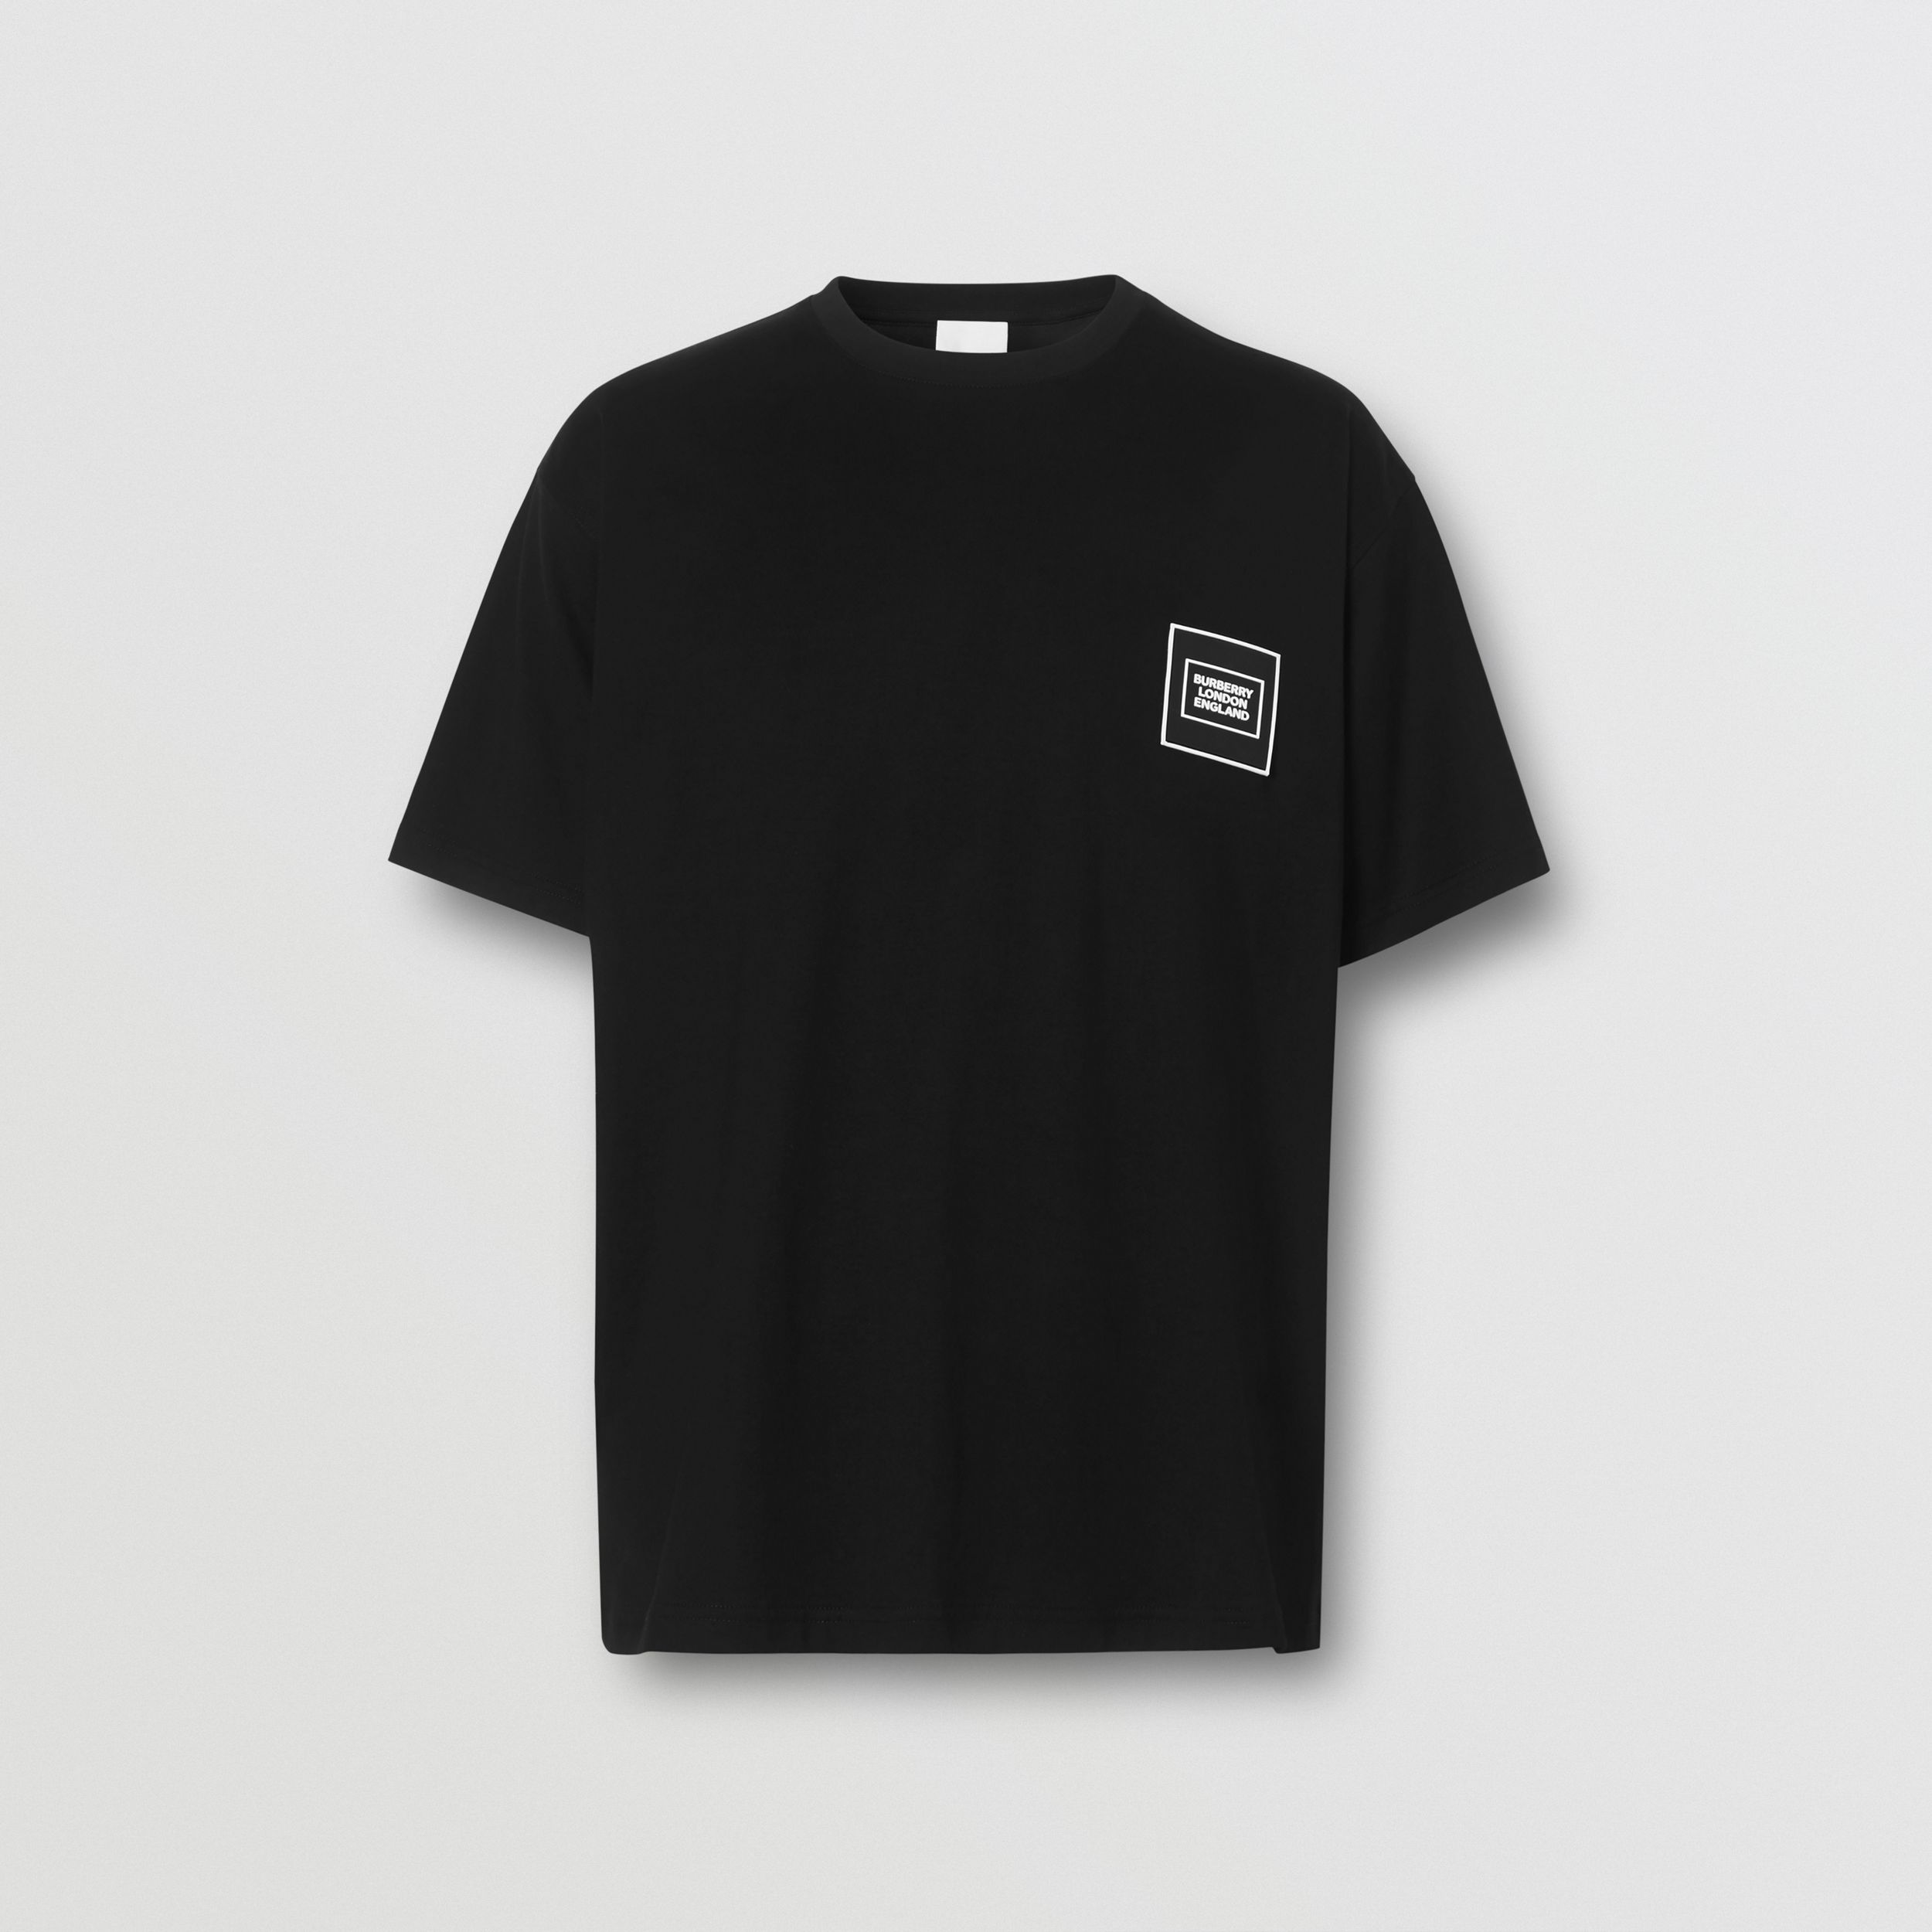 Logo Appliqué Cotton T-shirt in Black - Men | Burberry - 4